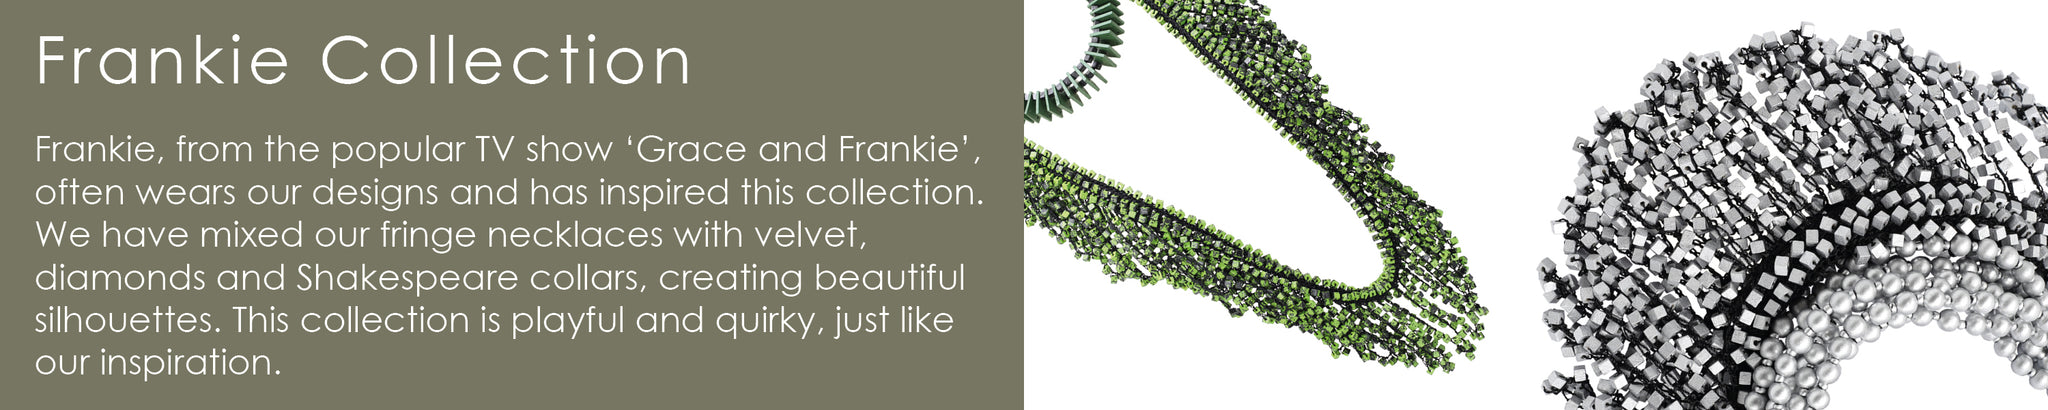 Frankie Collection